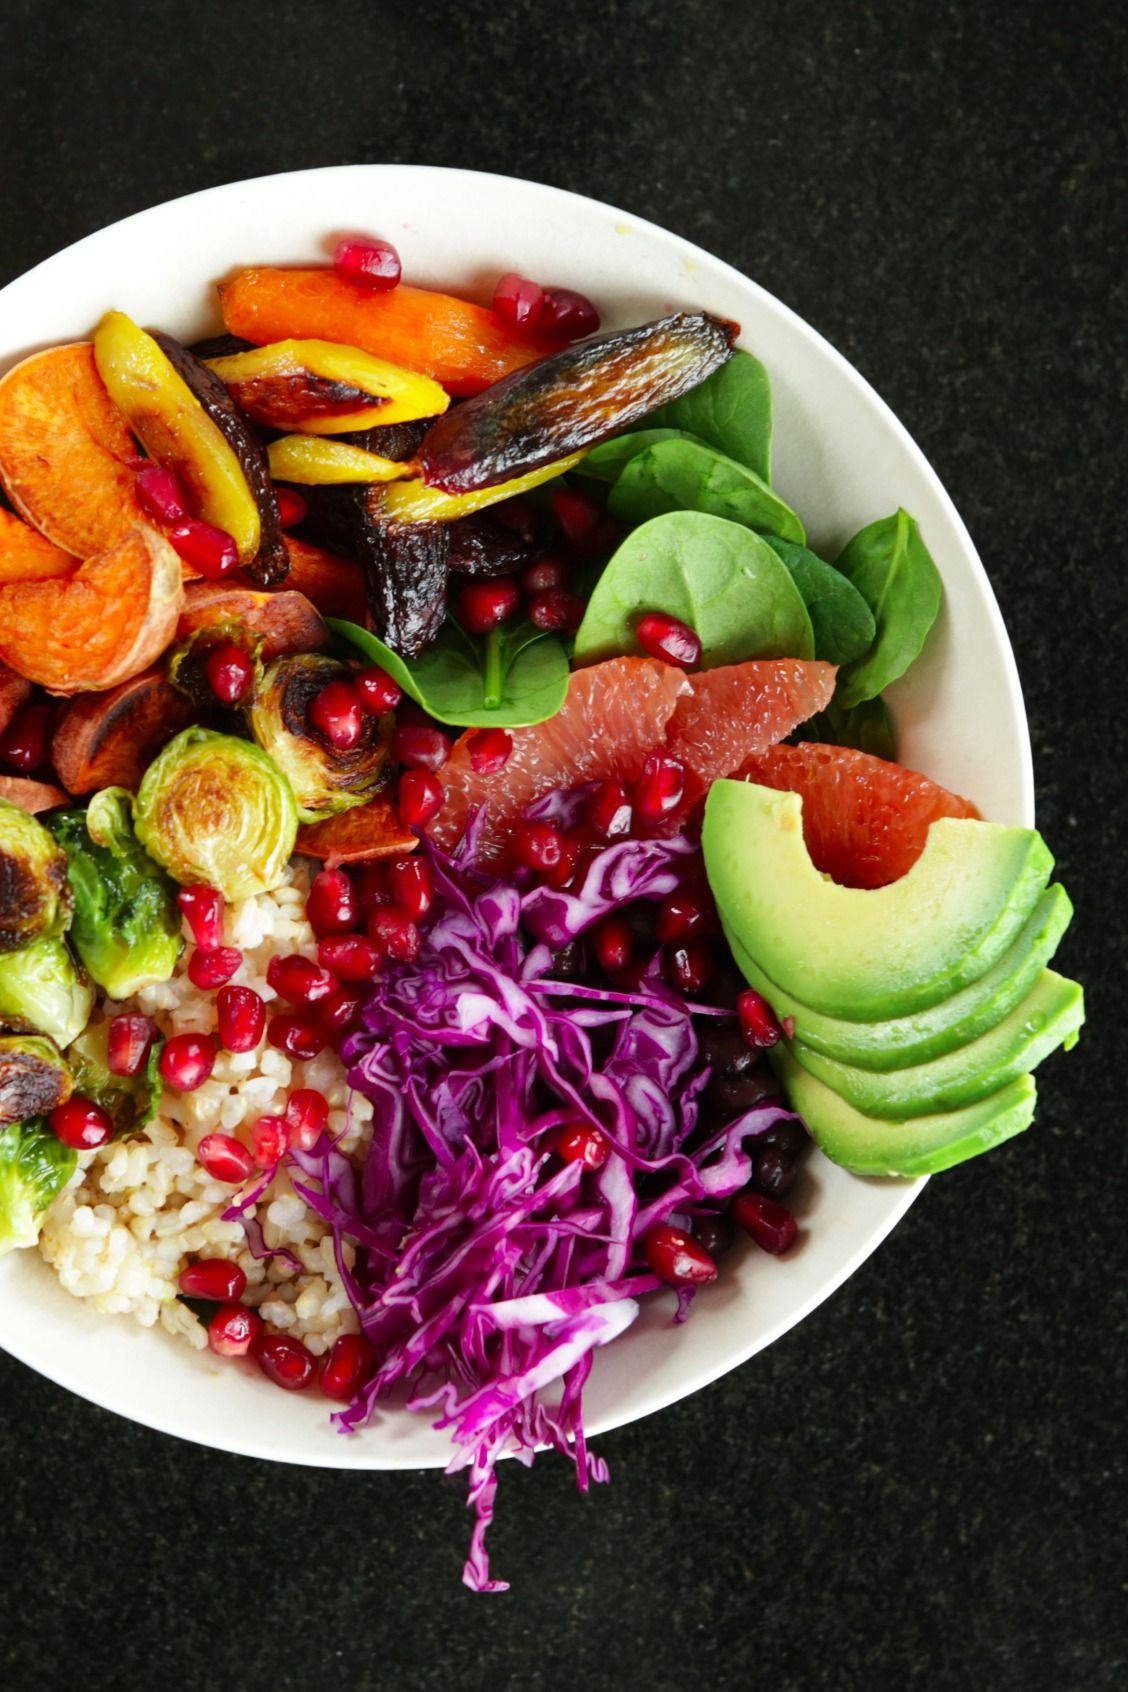 Take this 1-day superfood challenge today! Paid for by Suja.